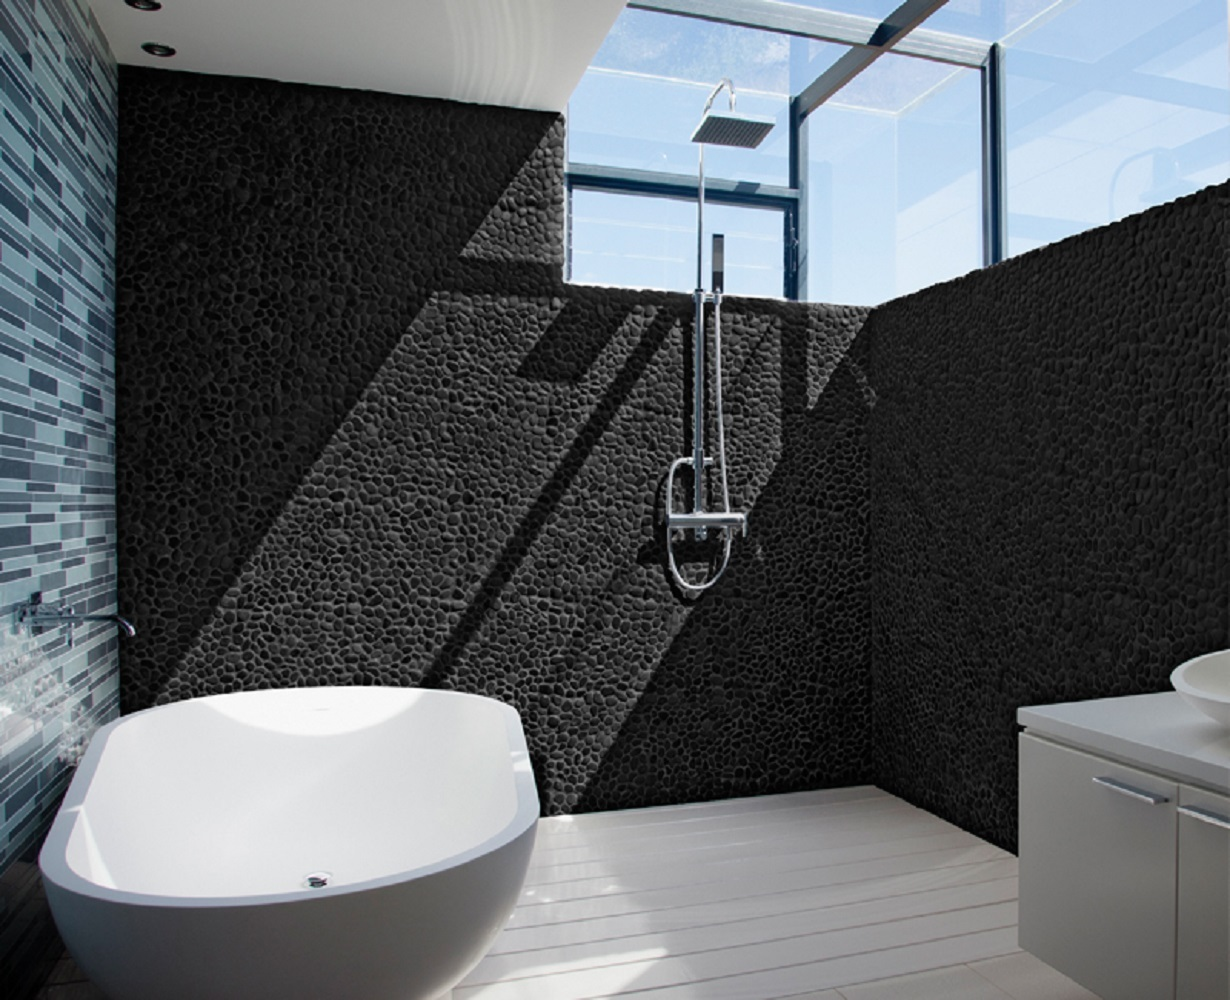 River Rock Black 12-in x 12-in Pebble Mosaic Tile (Common: 12-in x on pebble mosaic tile bathroom, marble bathroom designs, pebble flooring for bathroom, bathroom bathroom designs, pebble tile flooring, home bathroom designs, pebble rock bathroom ideas, pebble tile backsplash, pebble tile art, pebble tile bath, pebble tile bathroom remodeling ideas, pebble tile fireplaces, stone bathroom designs, pebble tile kitchen, stainless steel bathroom designs, slate bathroom designs, pebble mosaic medallion tile, pebble bathroom floor tile, pebble tile wallpaper, pebble tile shower,